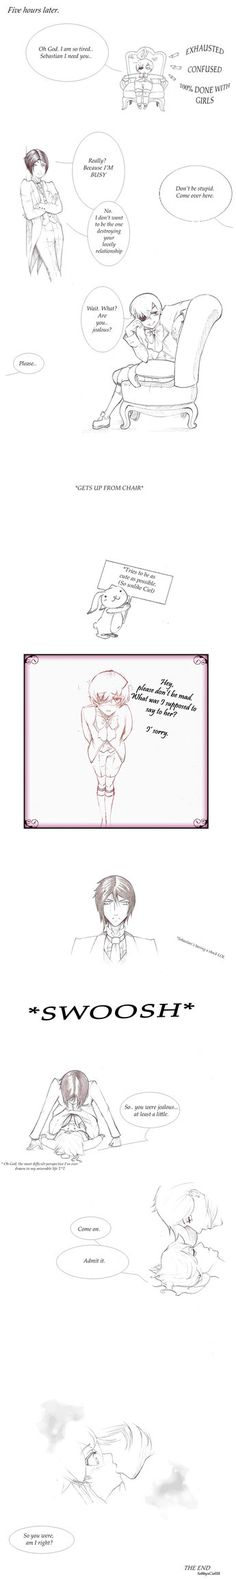 So a new short story I came up with, LOL poor Ciel and his dreams, he (I) wished that happed, >////////////< (Anyway, Sebastian knows what's going on xD) yeaaaaahh, idk where these ideas...